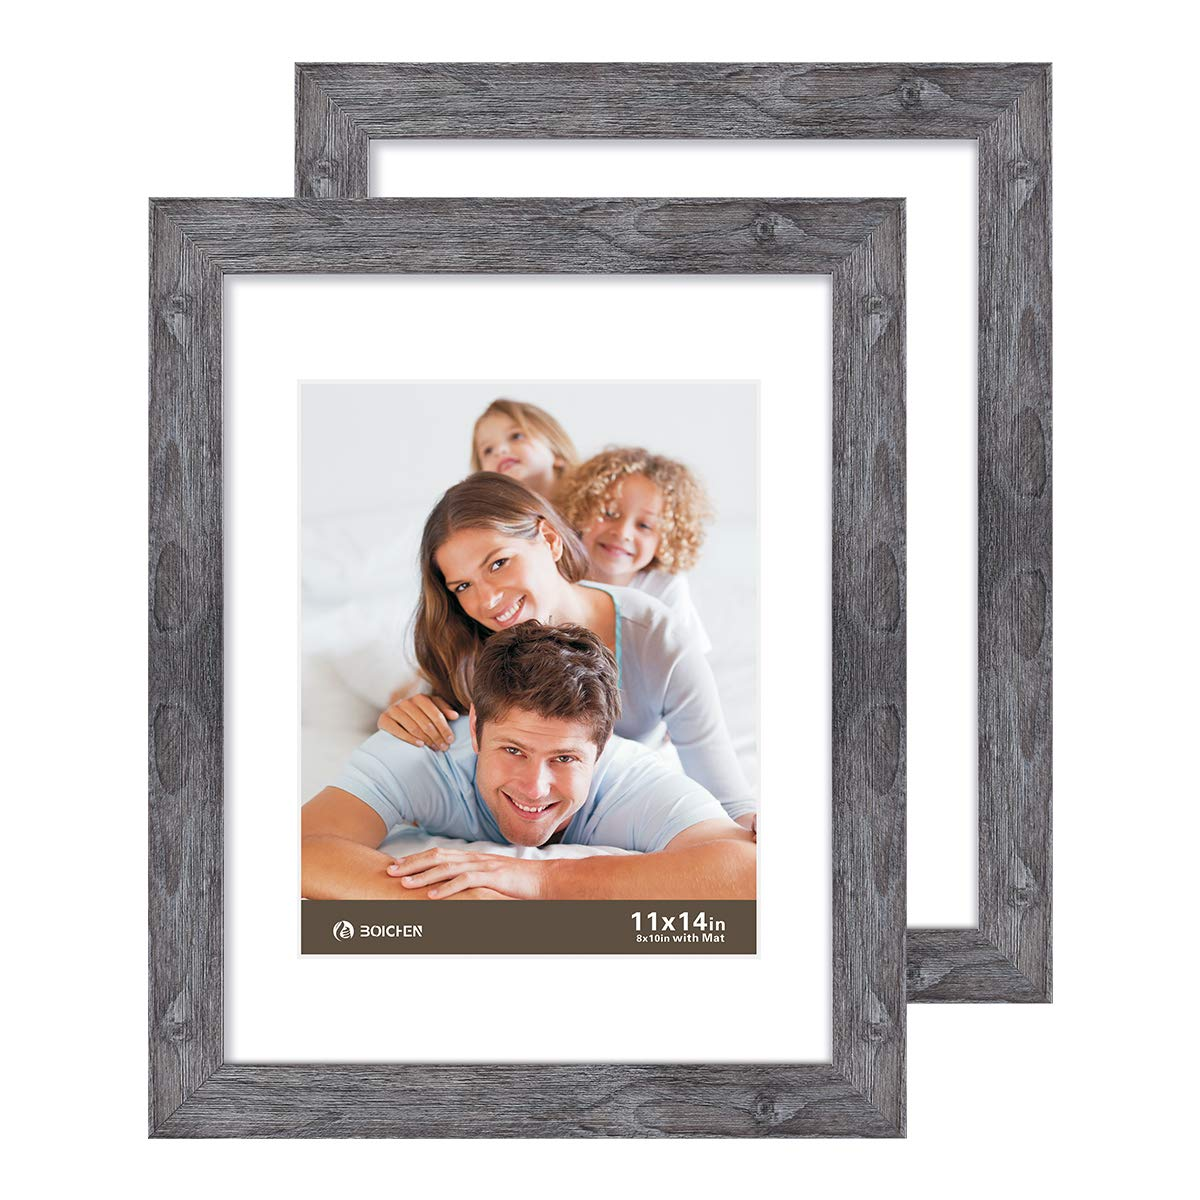 Boichen 11X14 Picture Frames 2 Pack Rustic Style Wood Pattern High Definition Glass for Tabletop Display and Wall mounting Photo Frame by Boichen